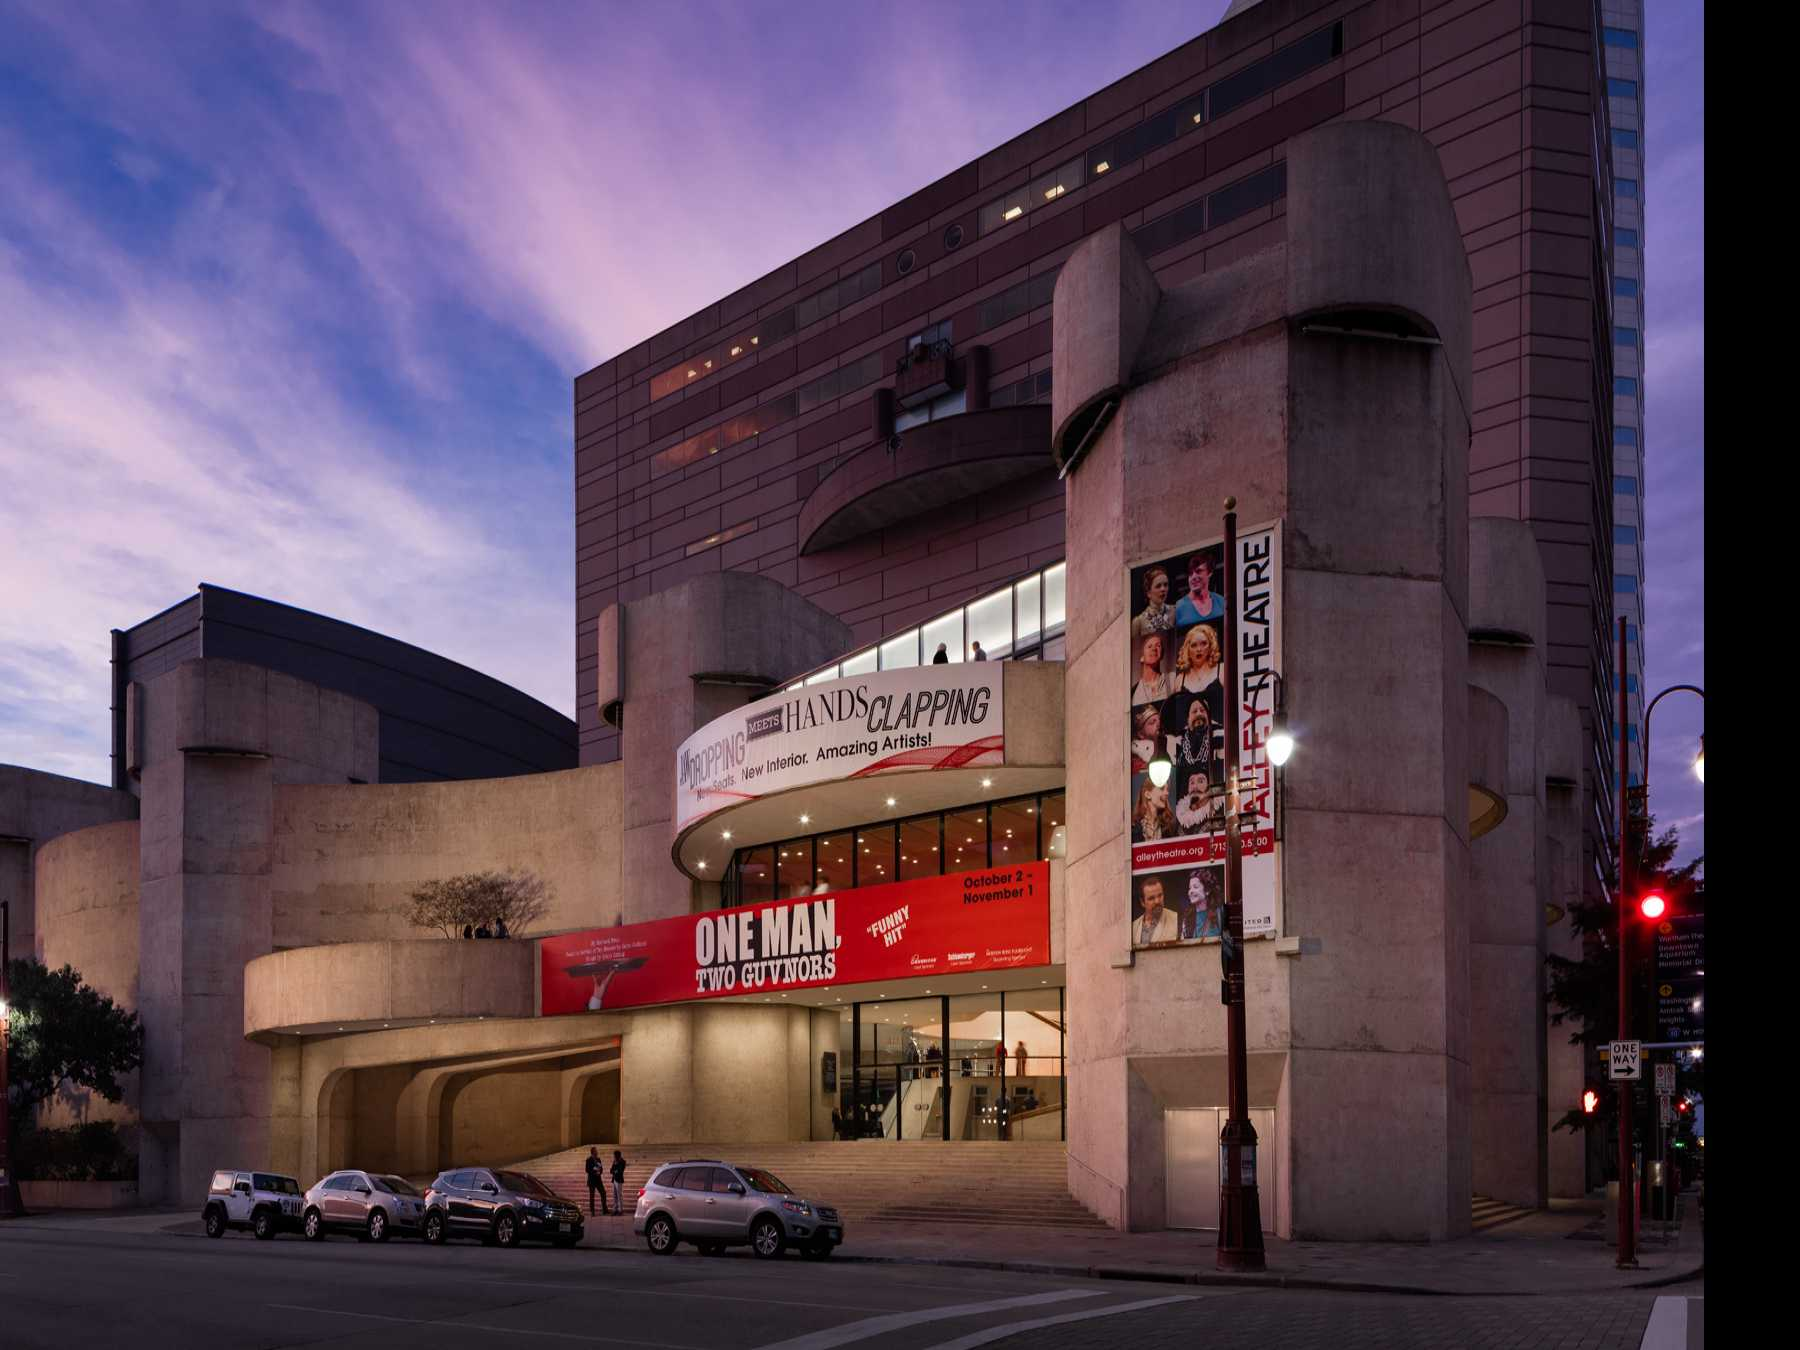 Houston's Alley Theatre Begins Recovery Following Hurricane Harvey